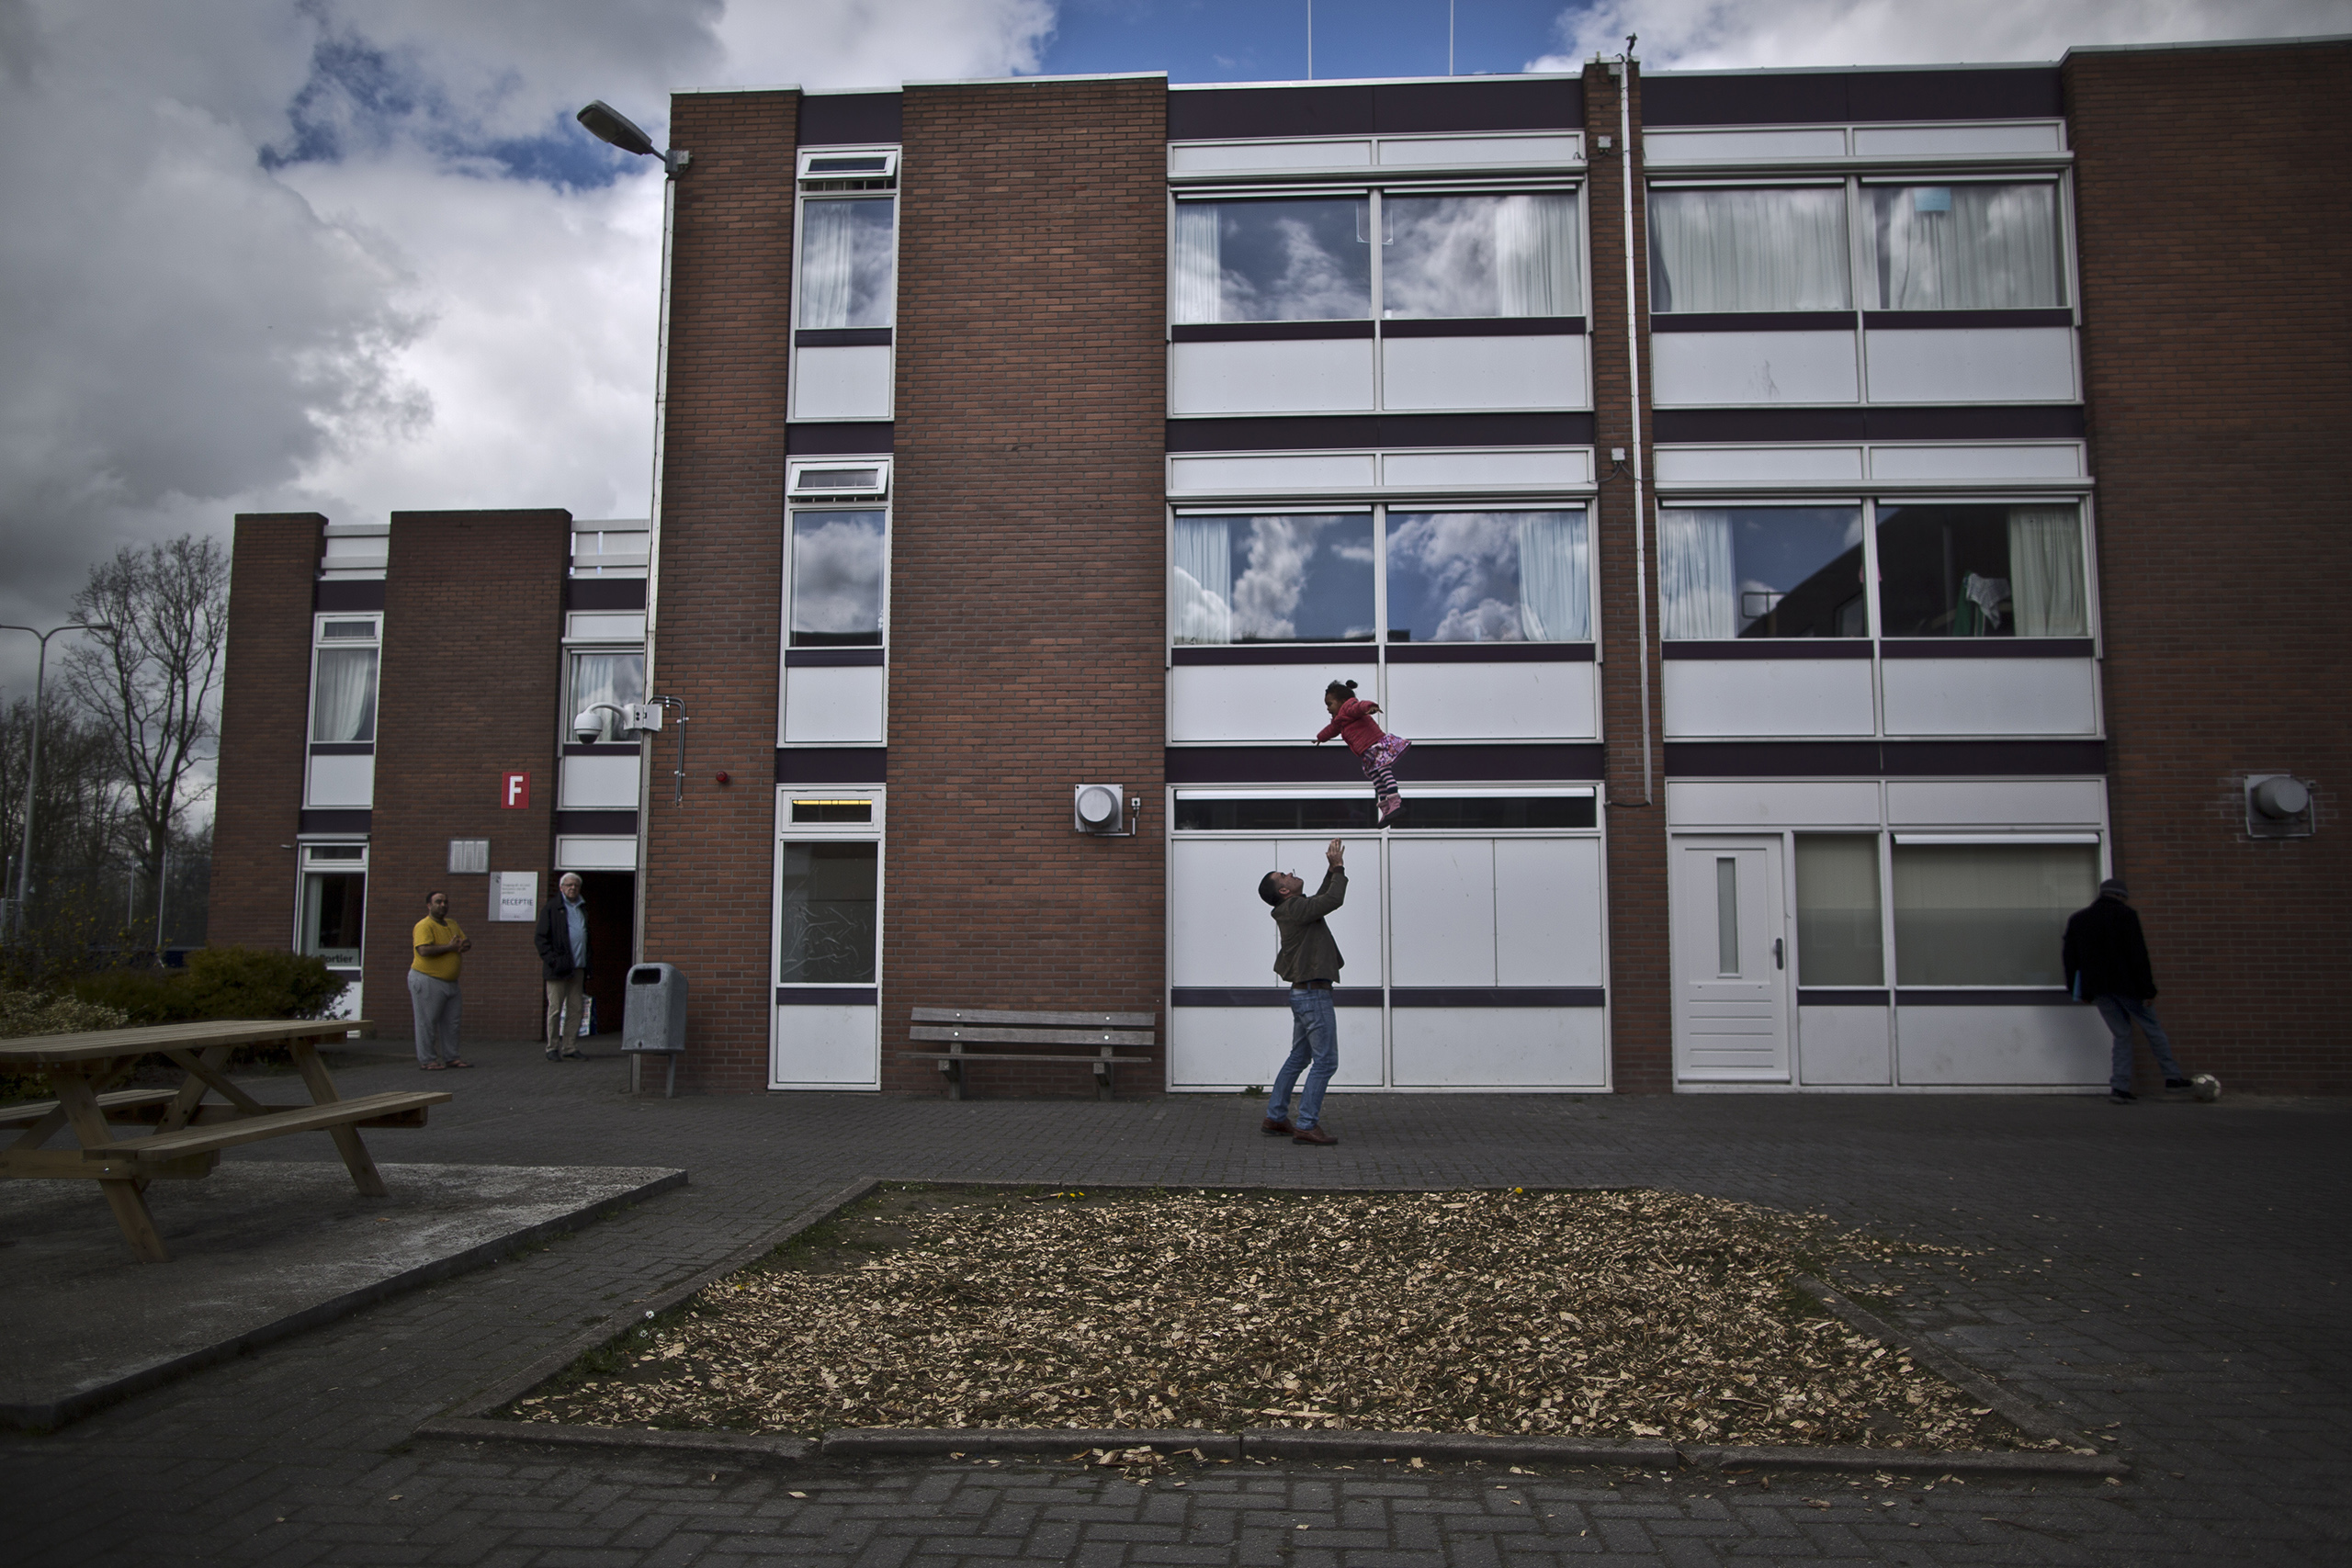 A migrant plays with a girl at the former prison of Westlingen in Heerhugowaard, northwestern Netherlands, April 8, 2016.